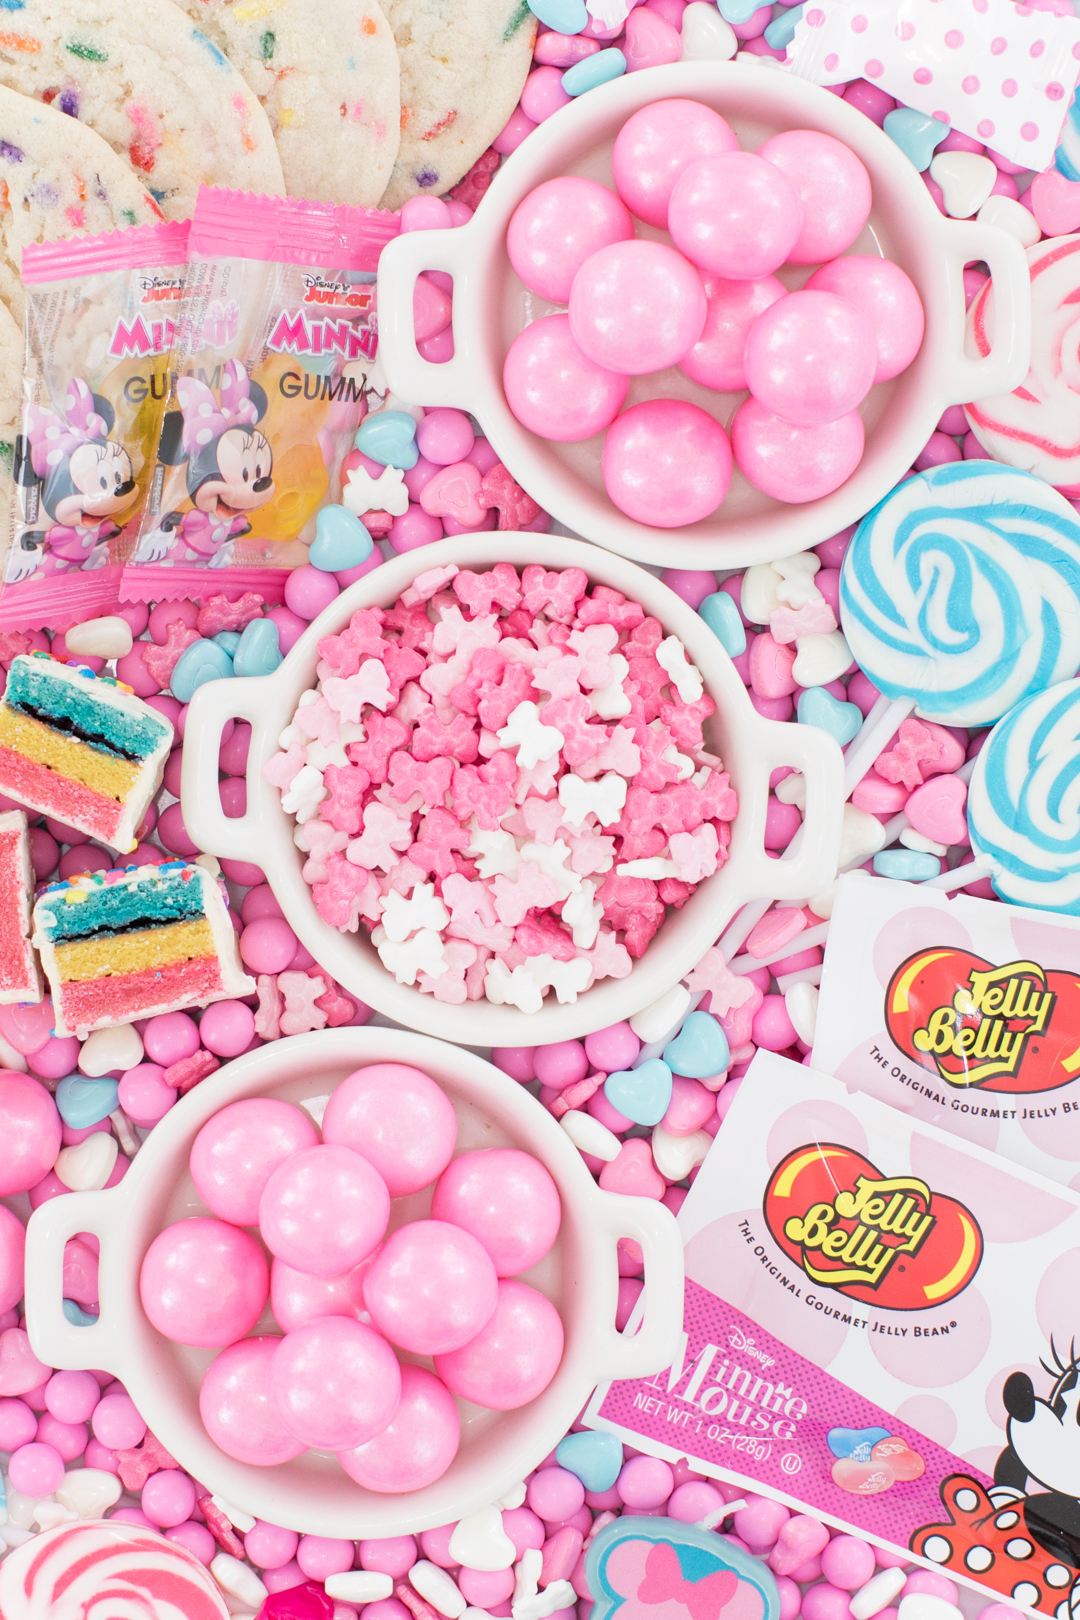 pretty pink candies in small dishes on top of a larger candy platter